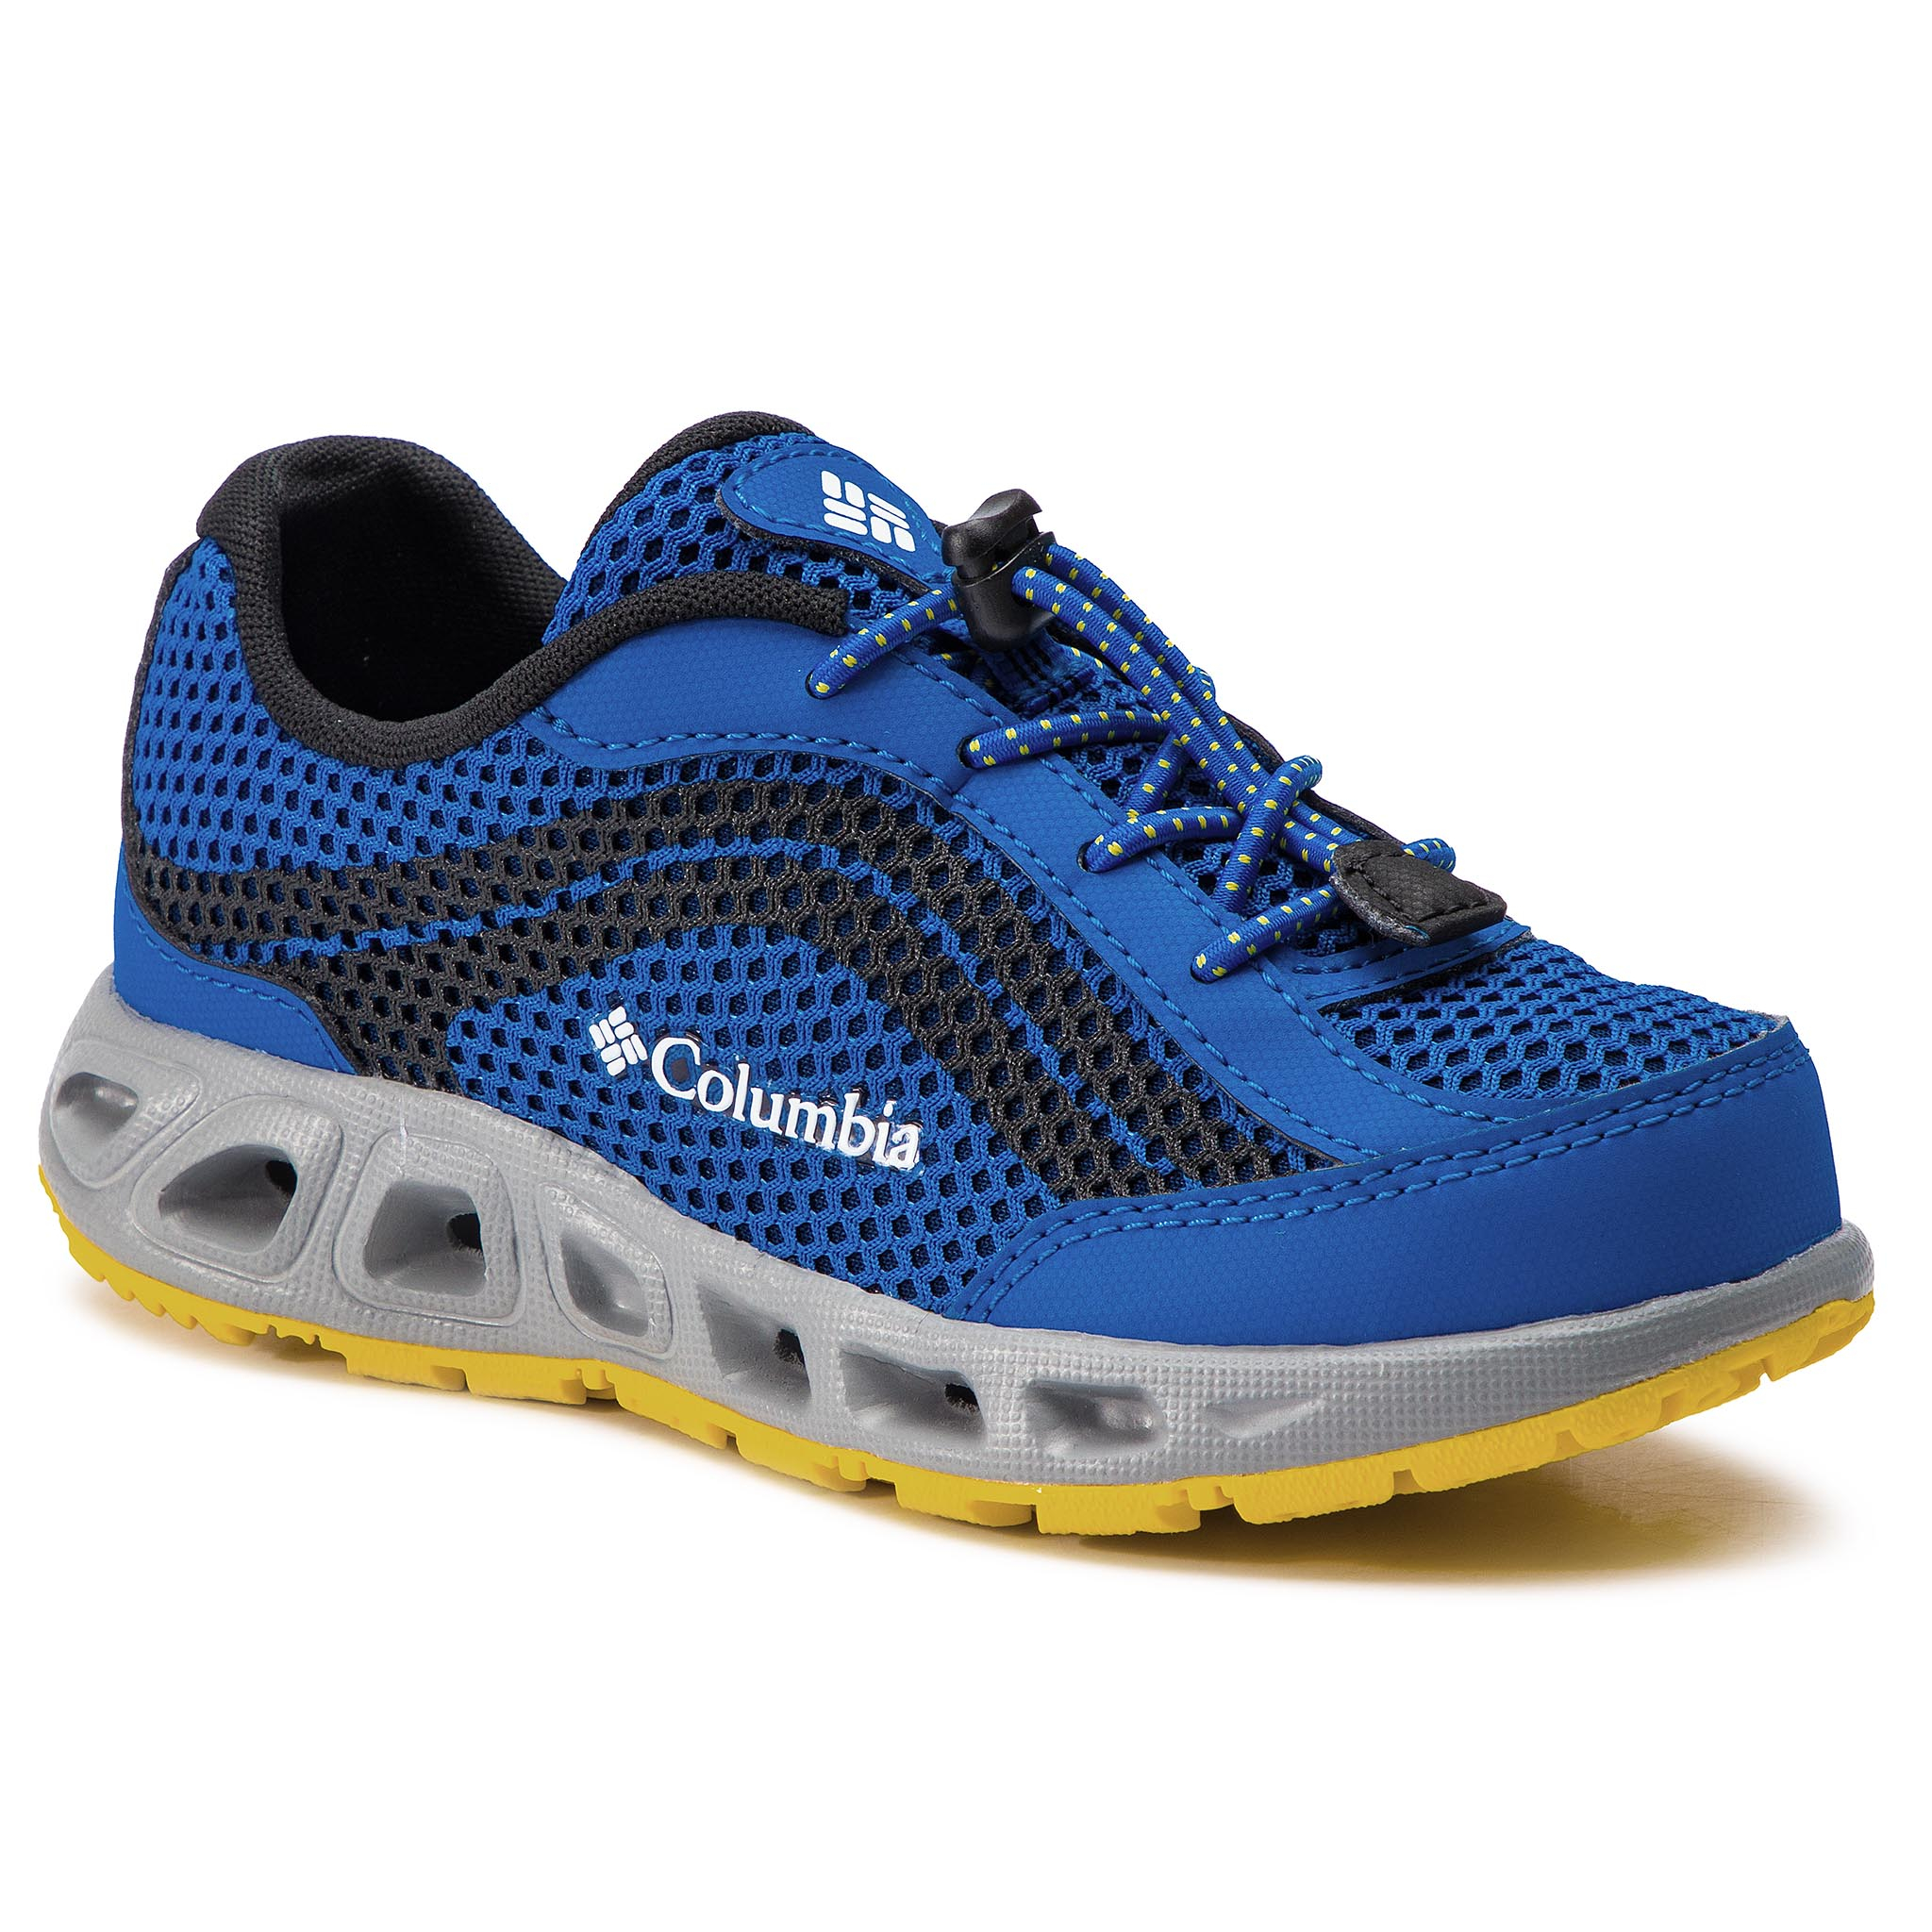 Trekkings COLUMBIA - Youth Drainmaker IV BY1091 Stormy Blue/Deep Yellow 426